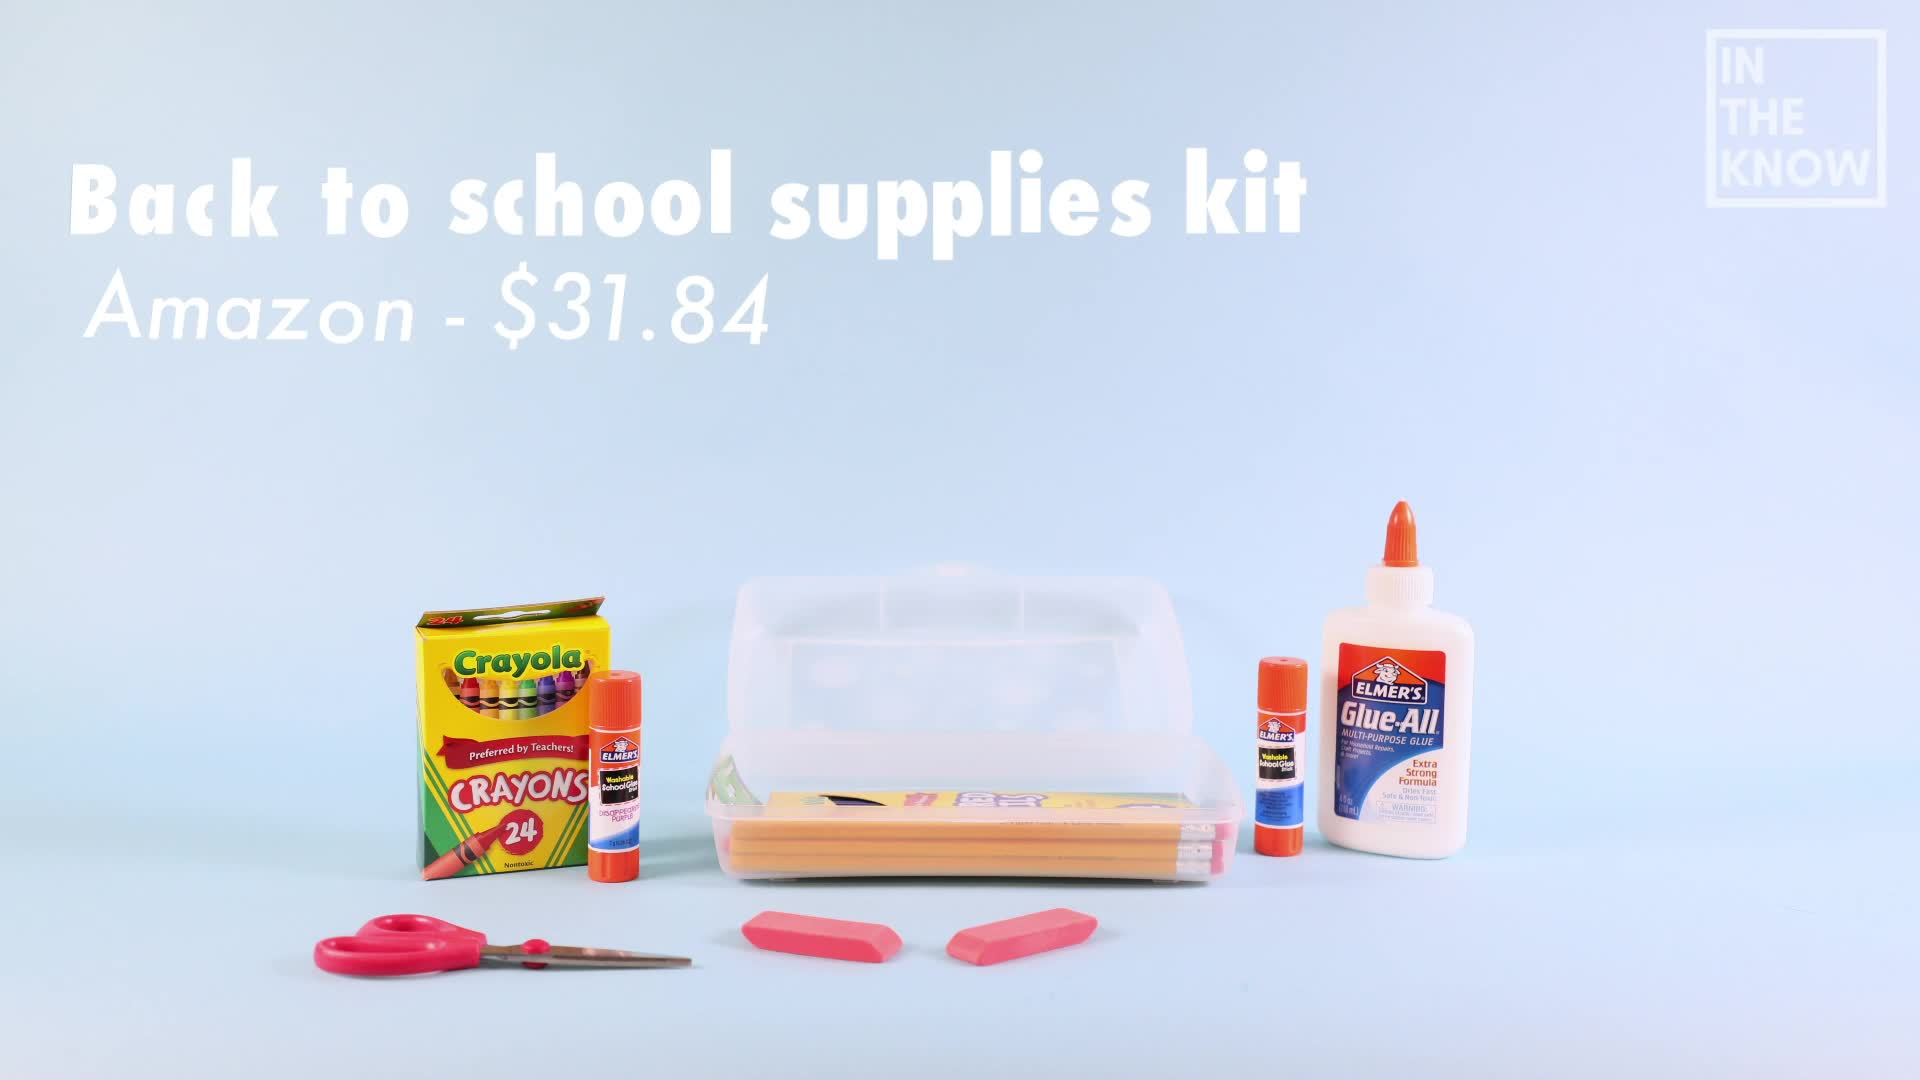 Add to Cart: These school supplies will make your kid excited to go back to school